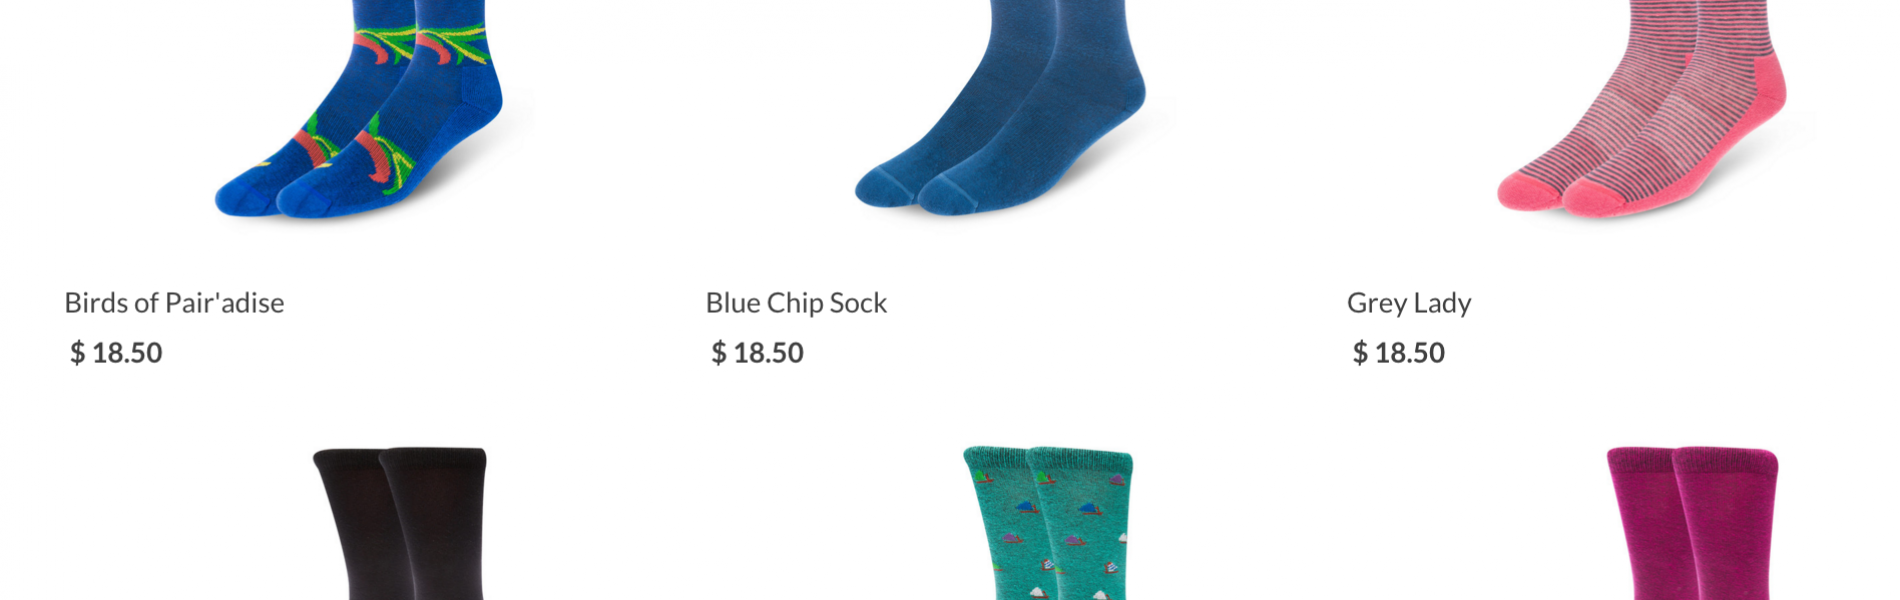 $18 for Ugly Socks with a Bee logo? HA HA HA